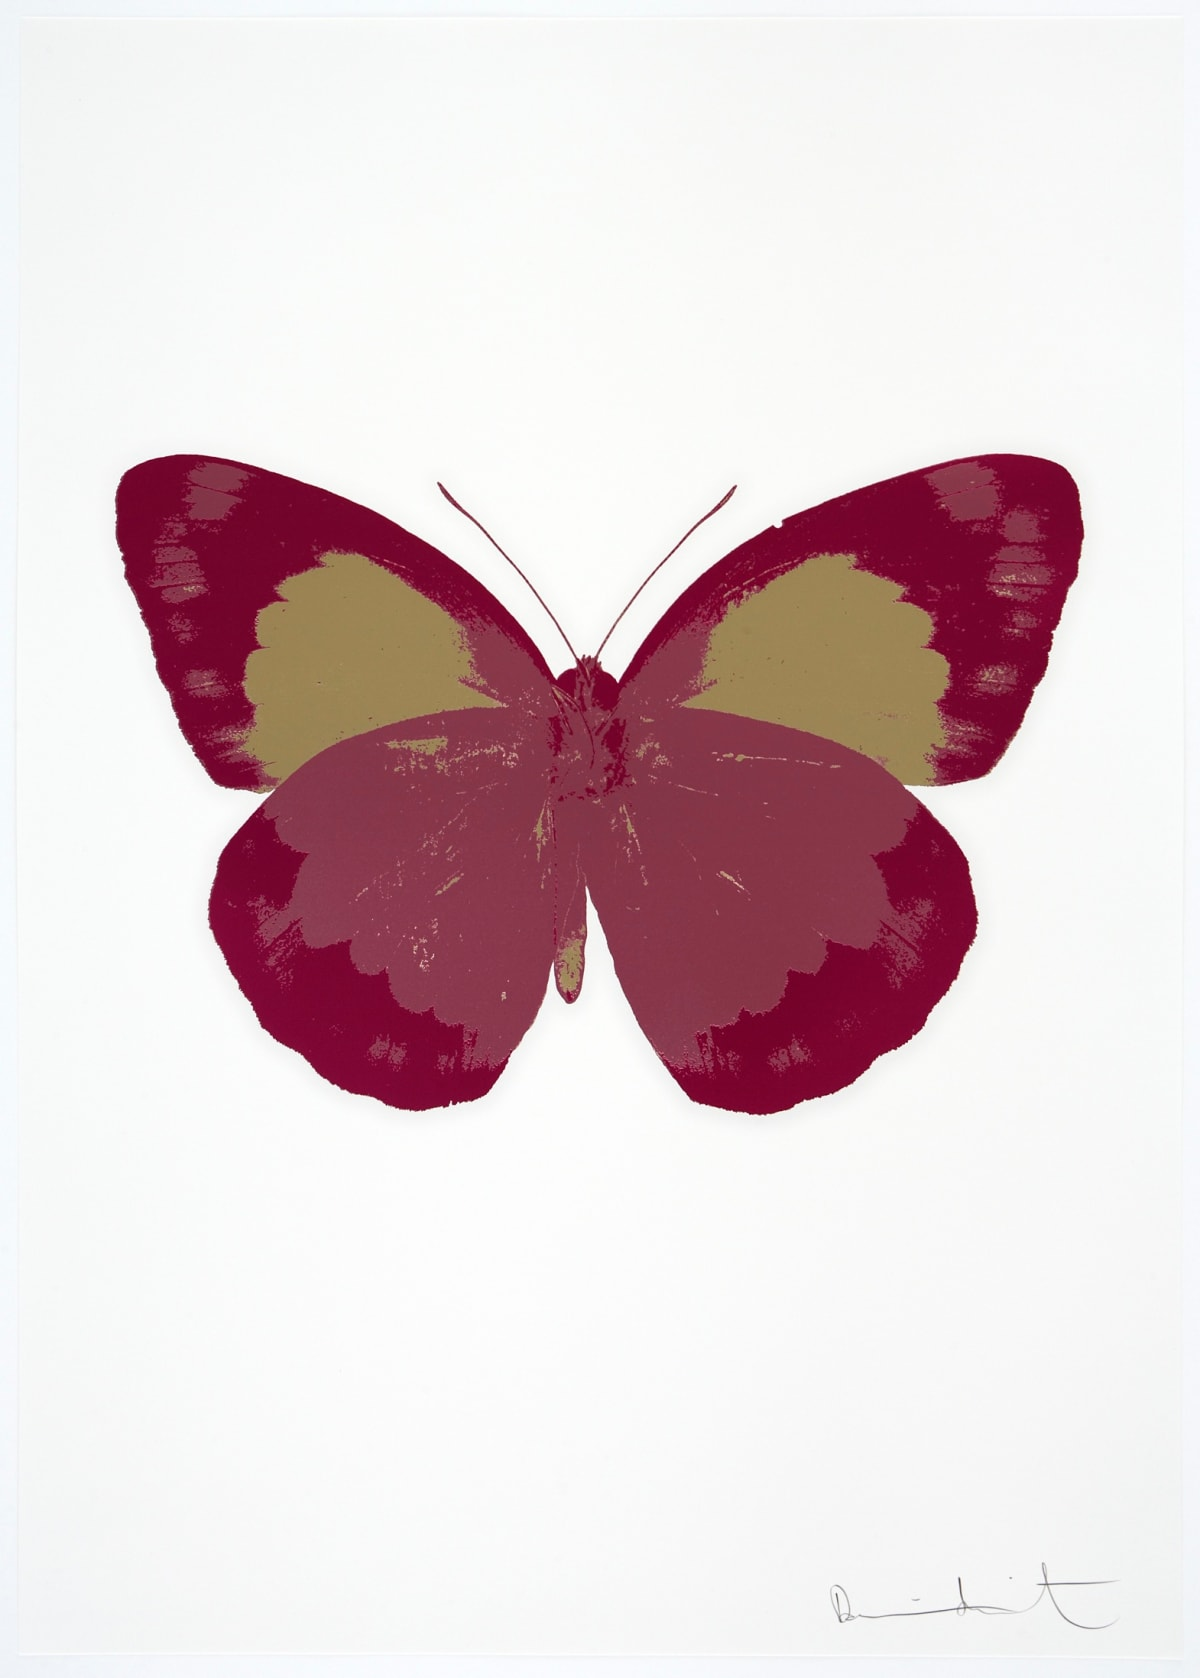 Damien Hirst The Souls II - Loganberry Pink/Fuchsia Pink/Cool Gold, 2010 3 colour foil block on 300gsm Arches 88 archival paper. Signed and numbered. Published by Paul Stolper and Other Criteria 72 x 51cm OC7877 / 658-60 Edition of 15